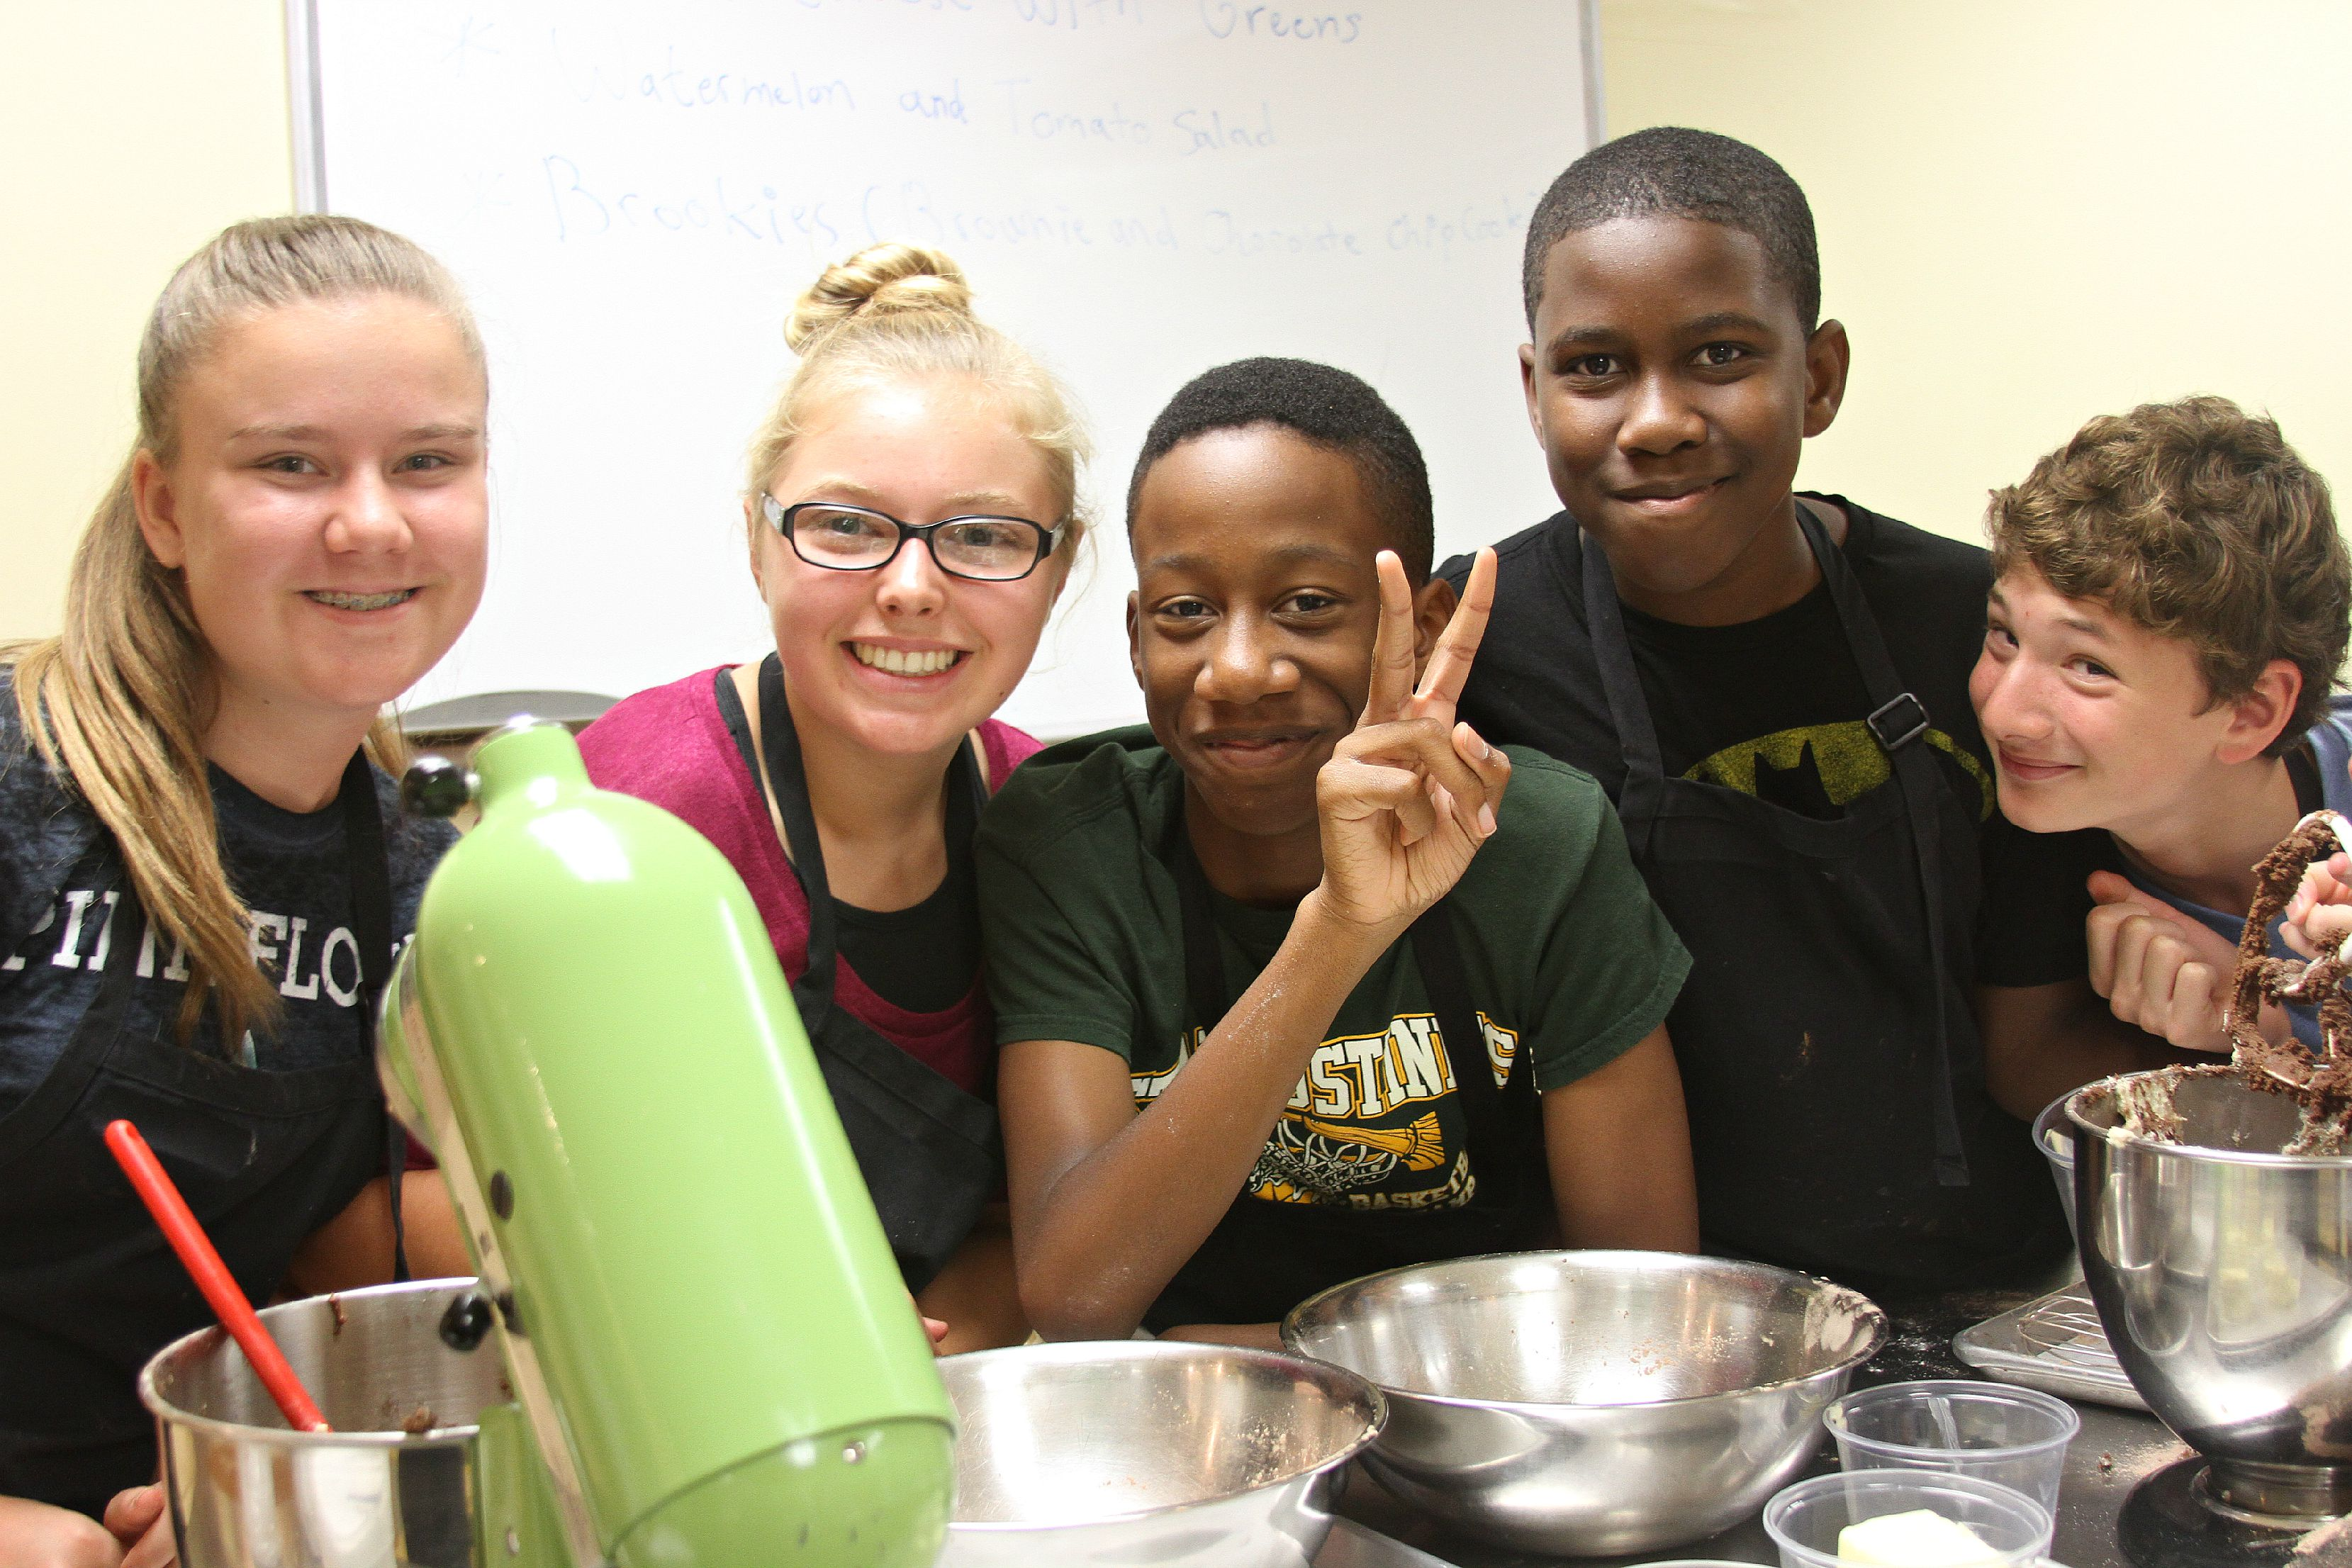 Summer Program - Cooking and Baking | Summer and School Vacation Programs